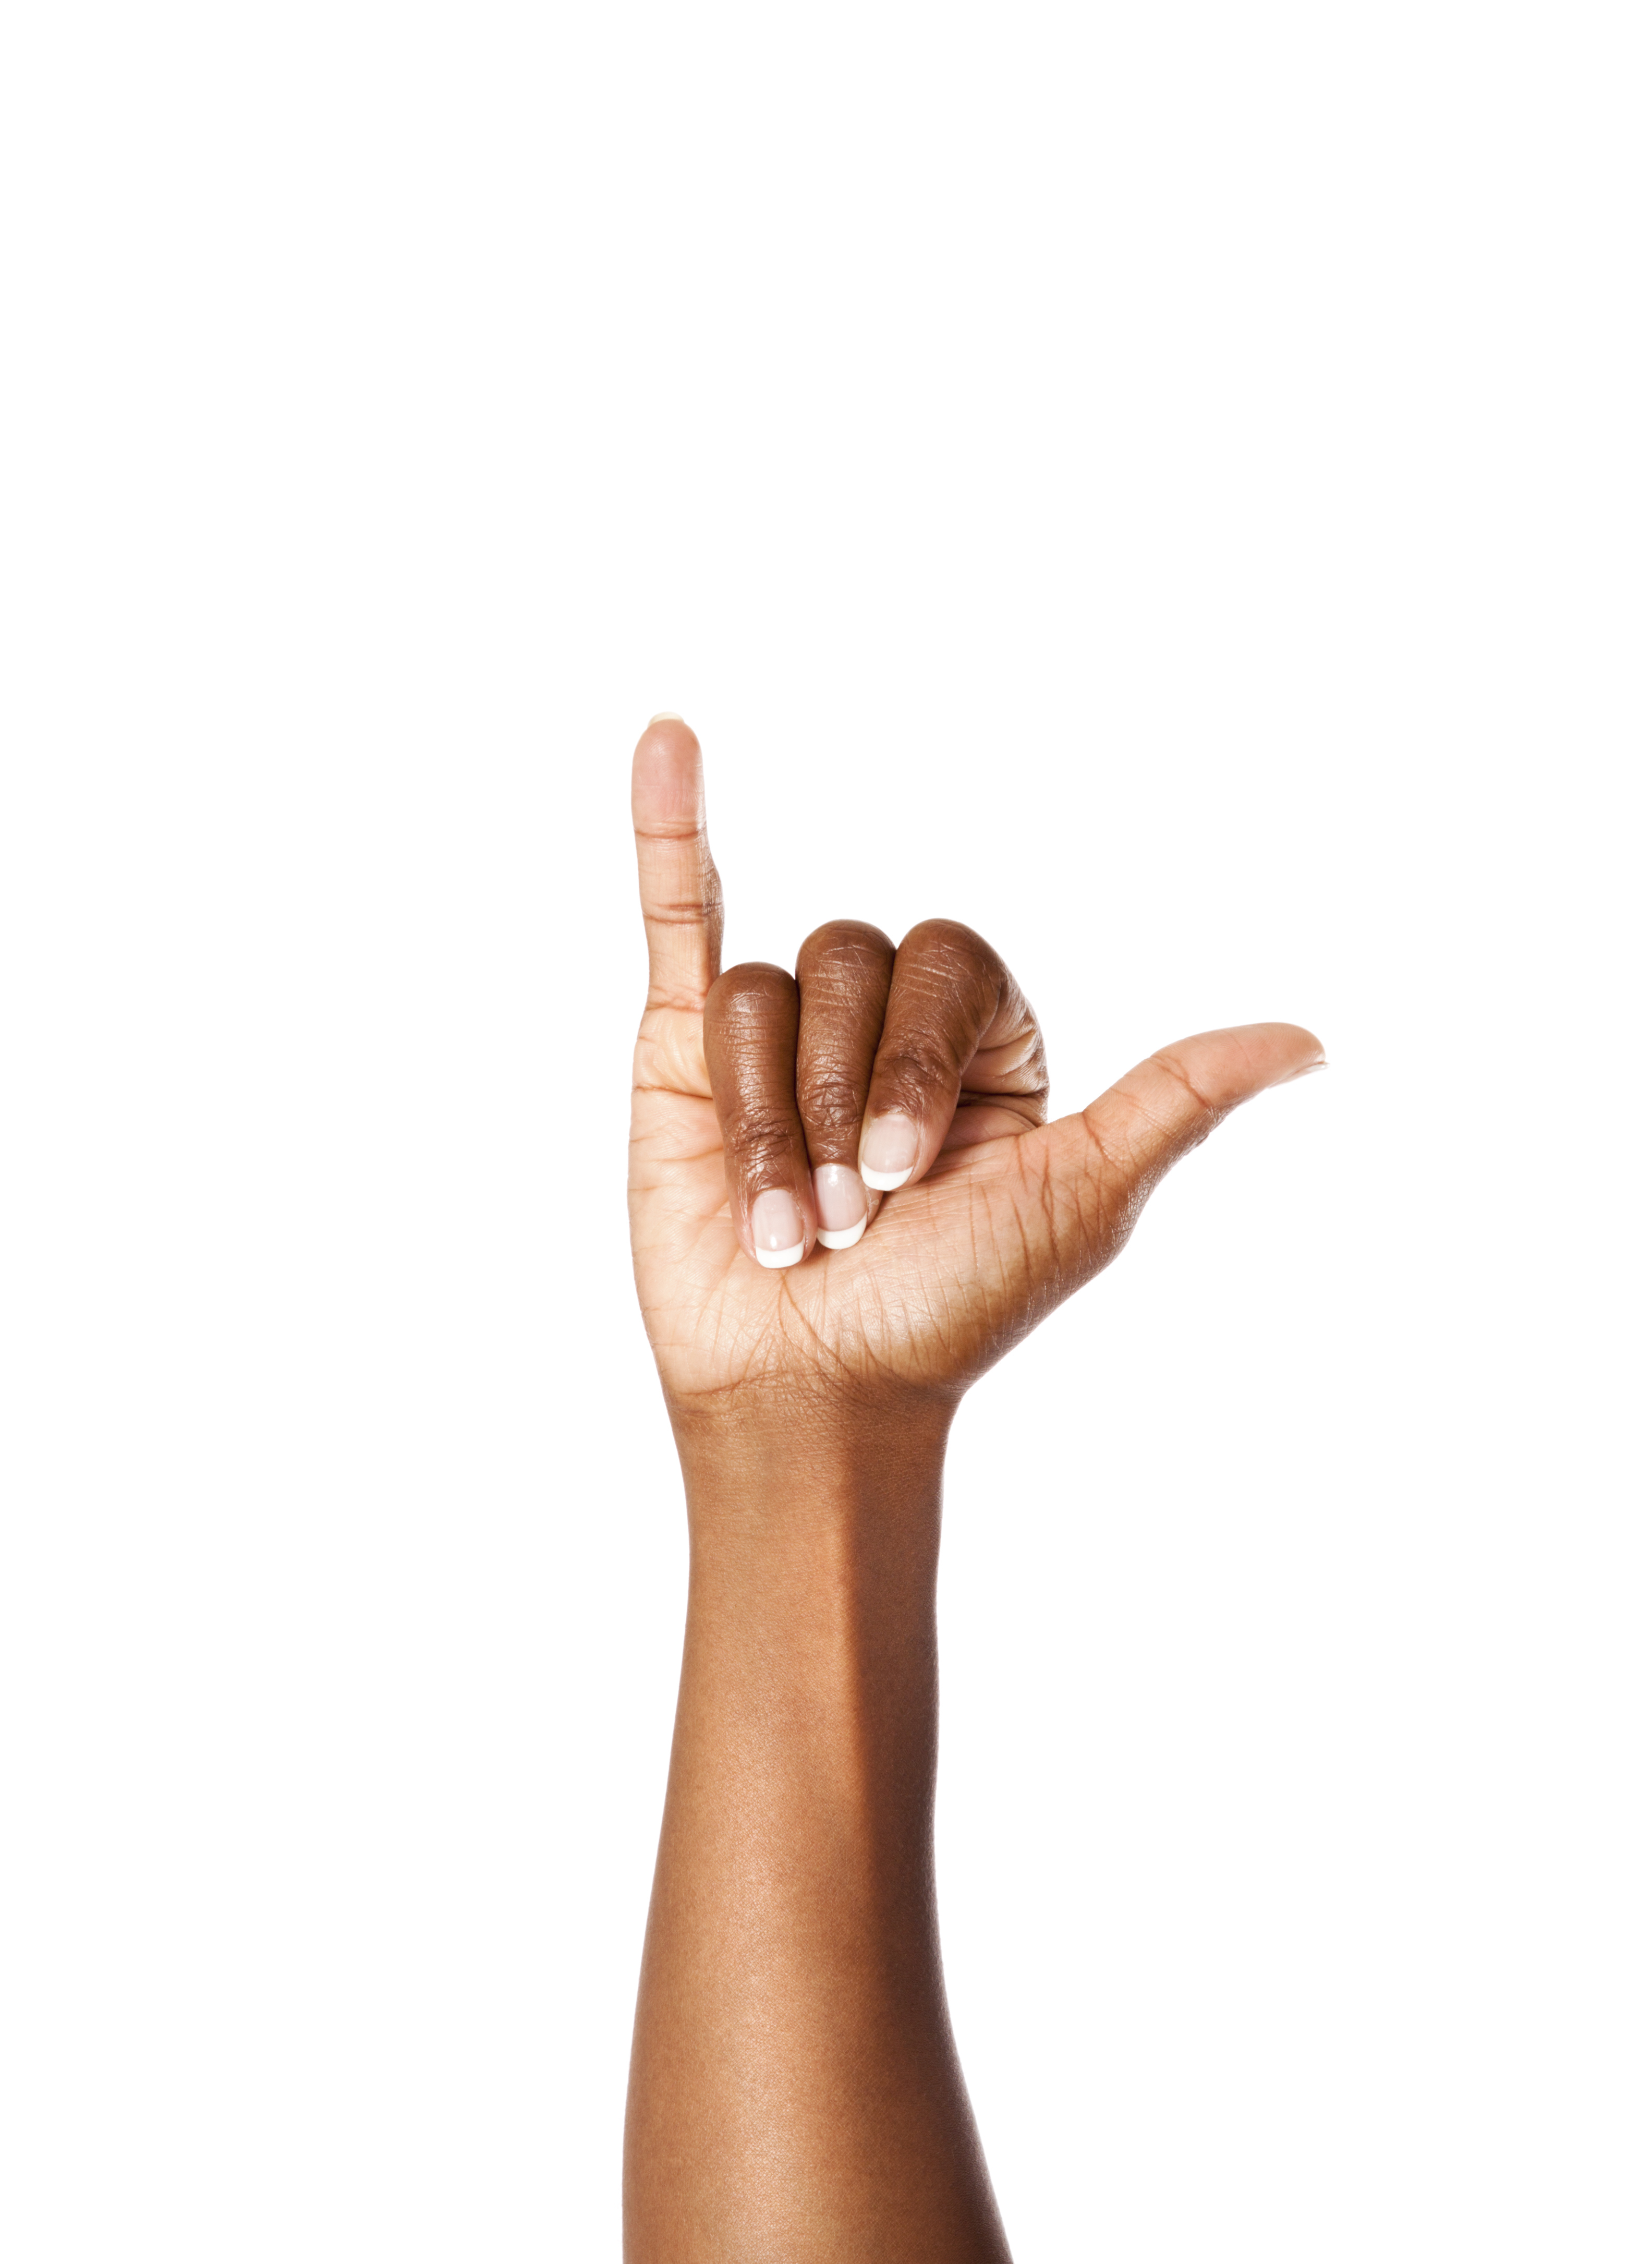 Letter Y in American Sign Language